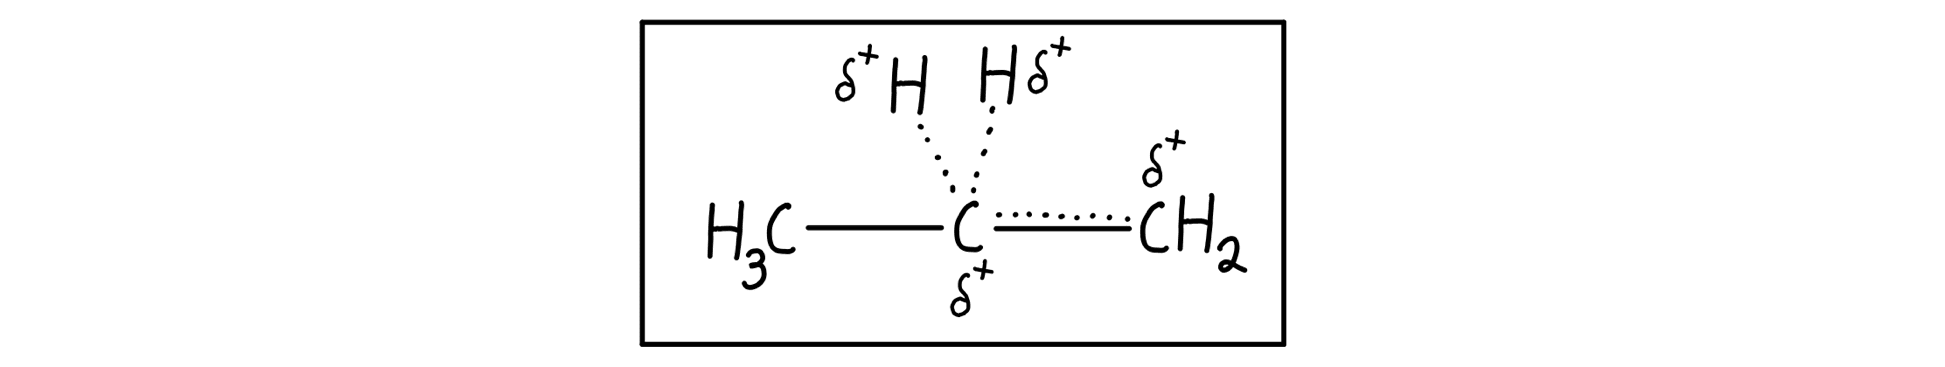 Primary carbocation resonance hybrid